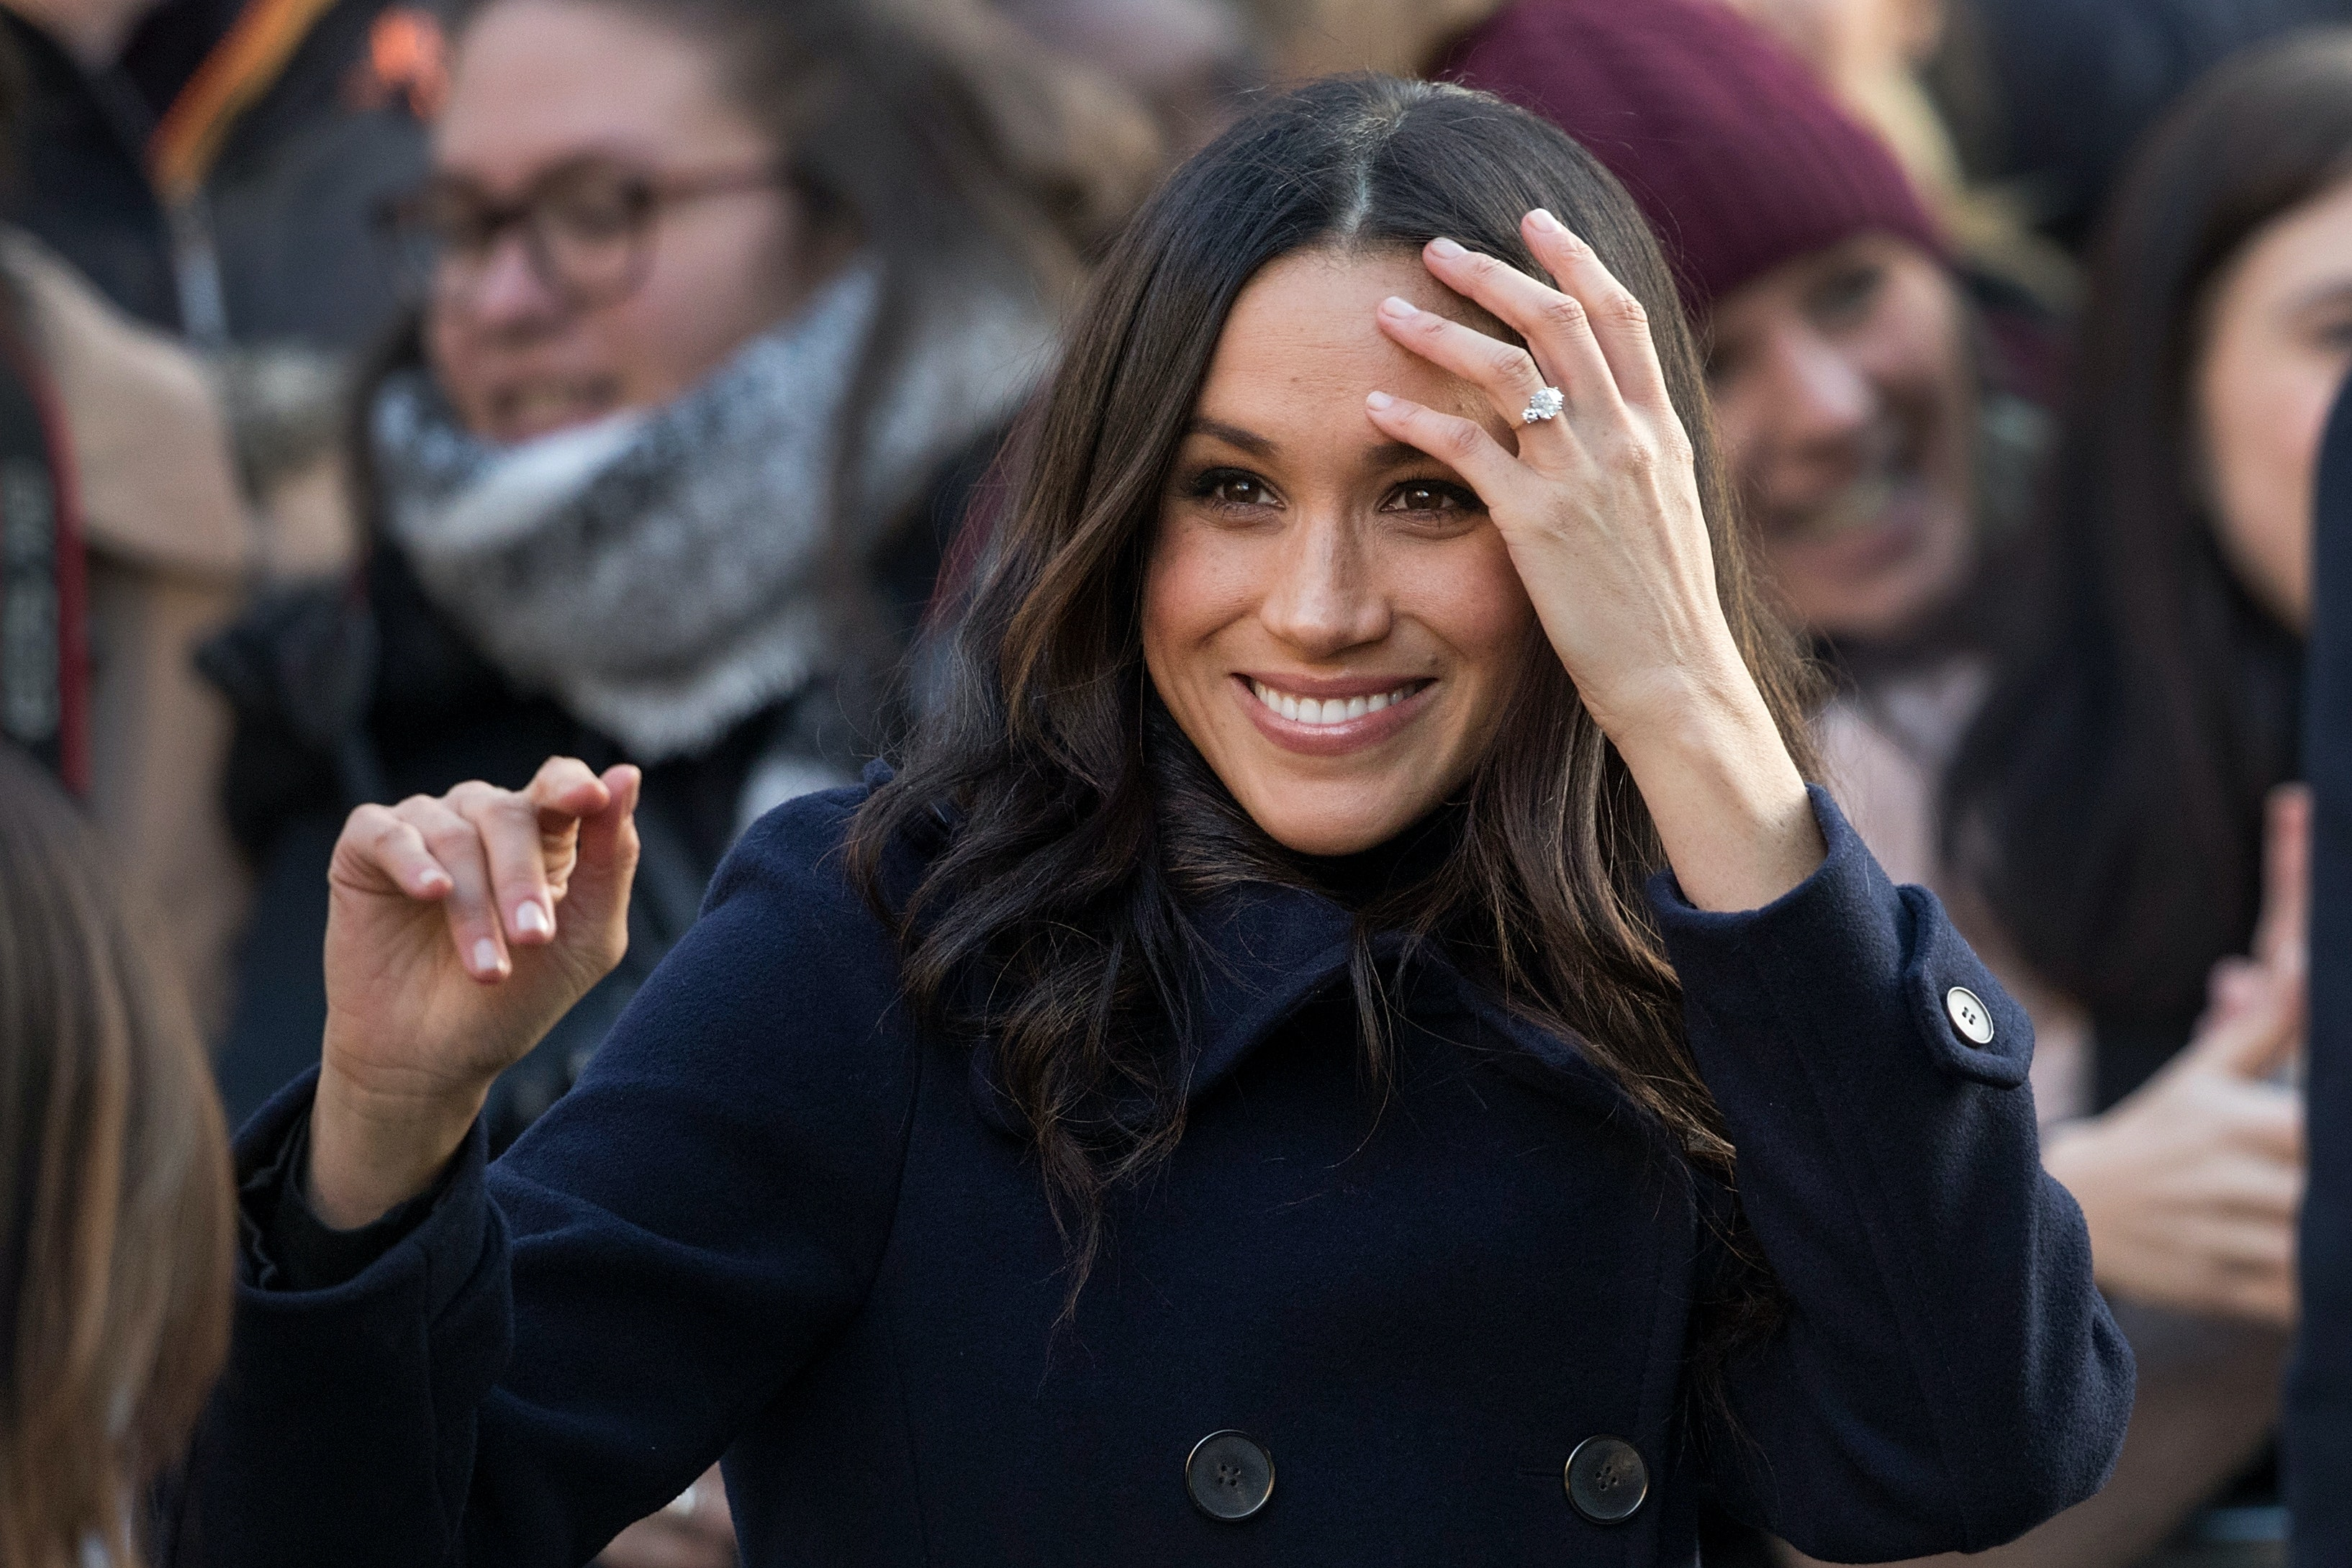 Princess Michael of Kent's racist jewelry greets Meghan